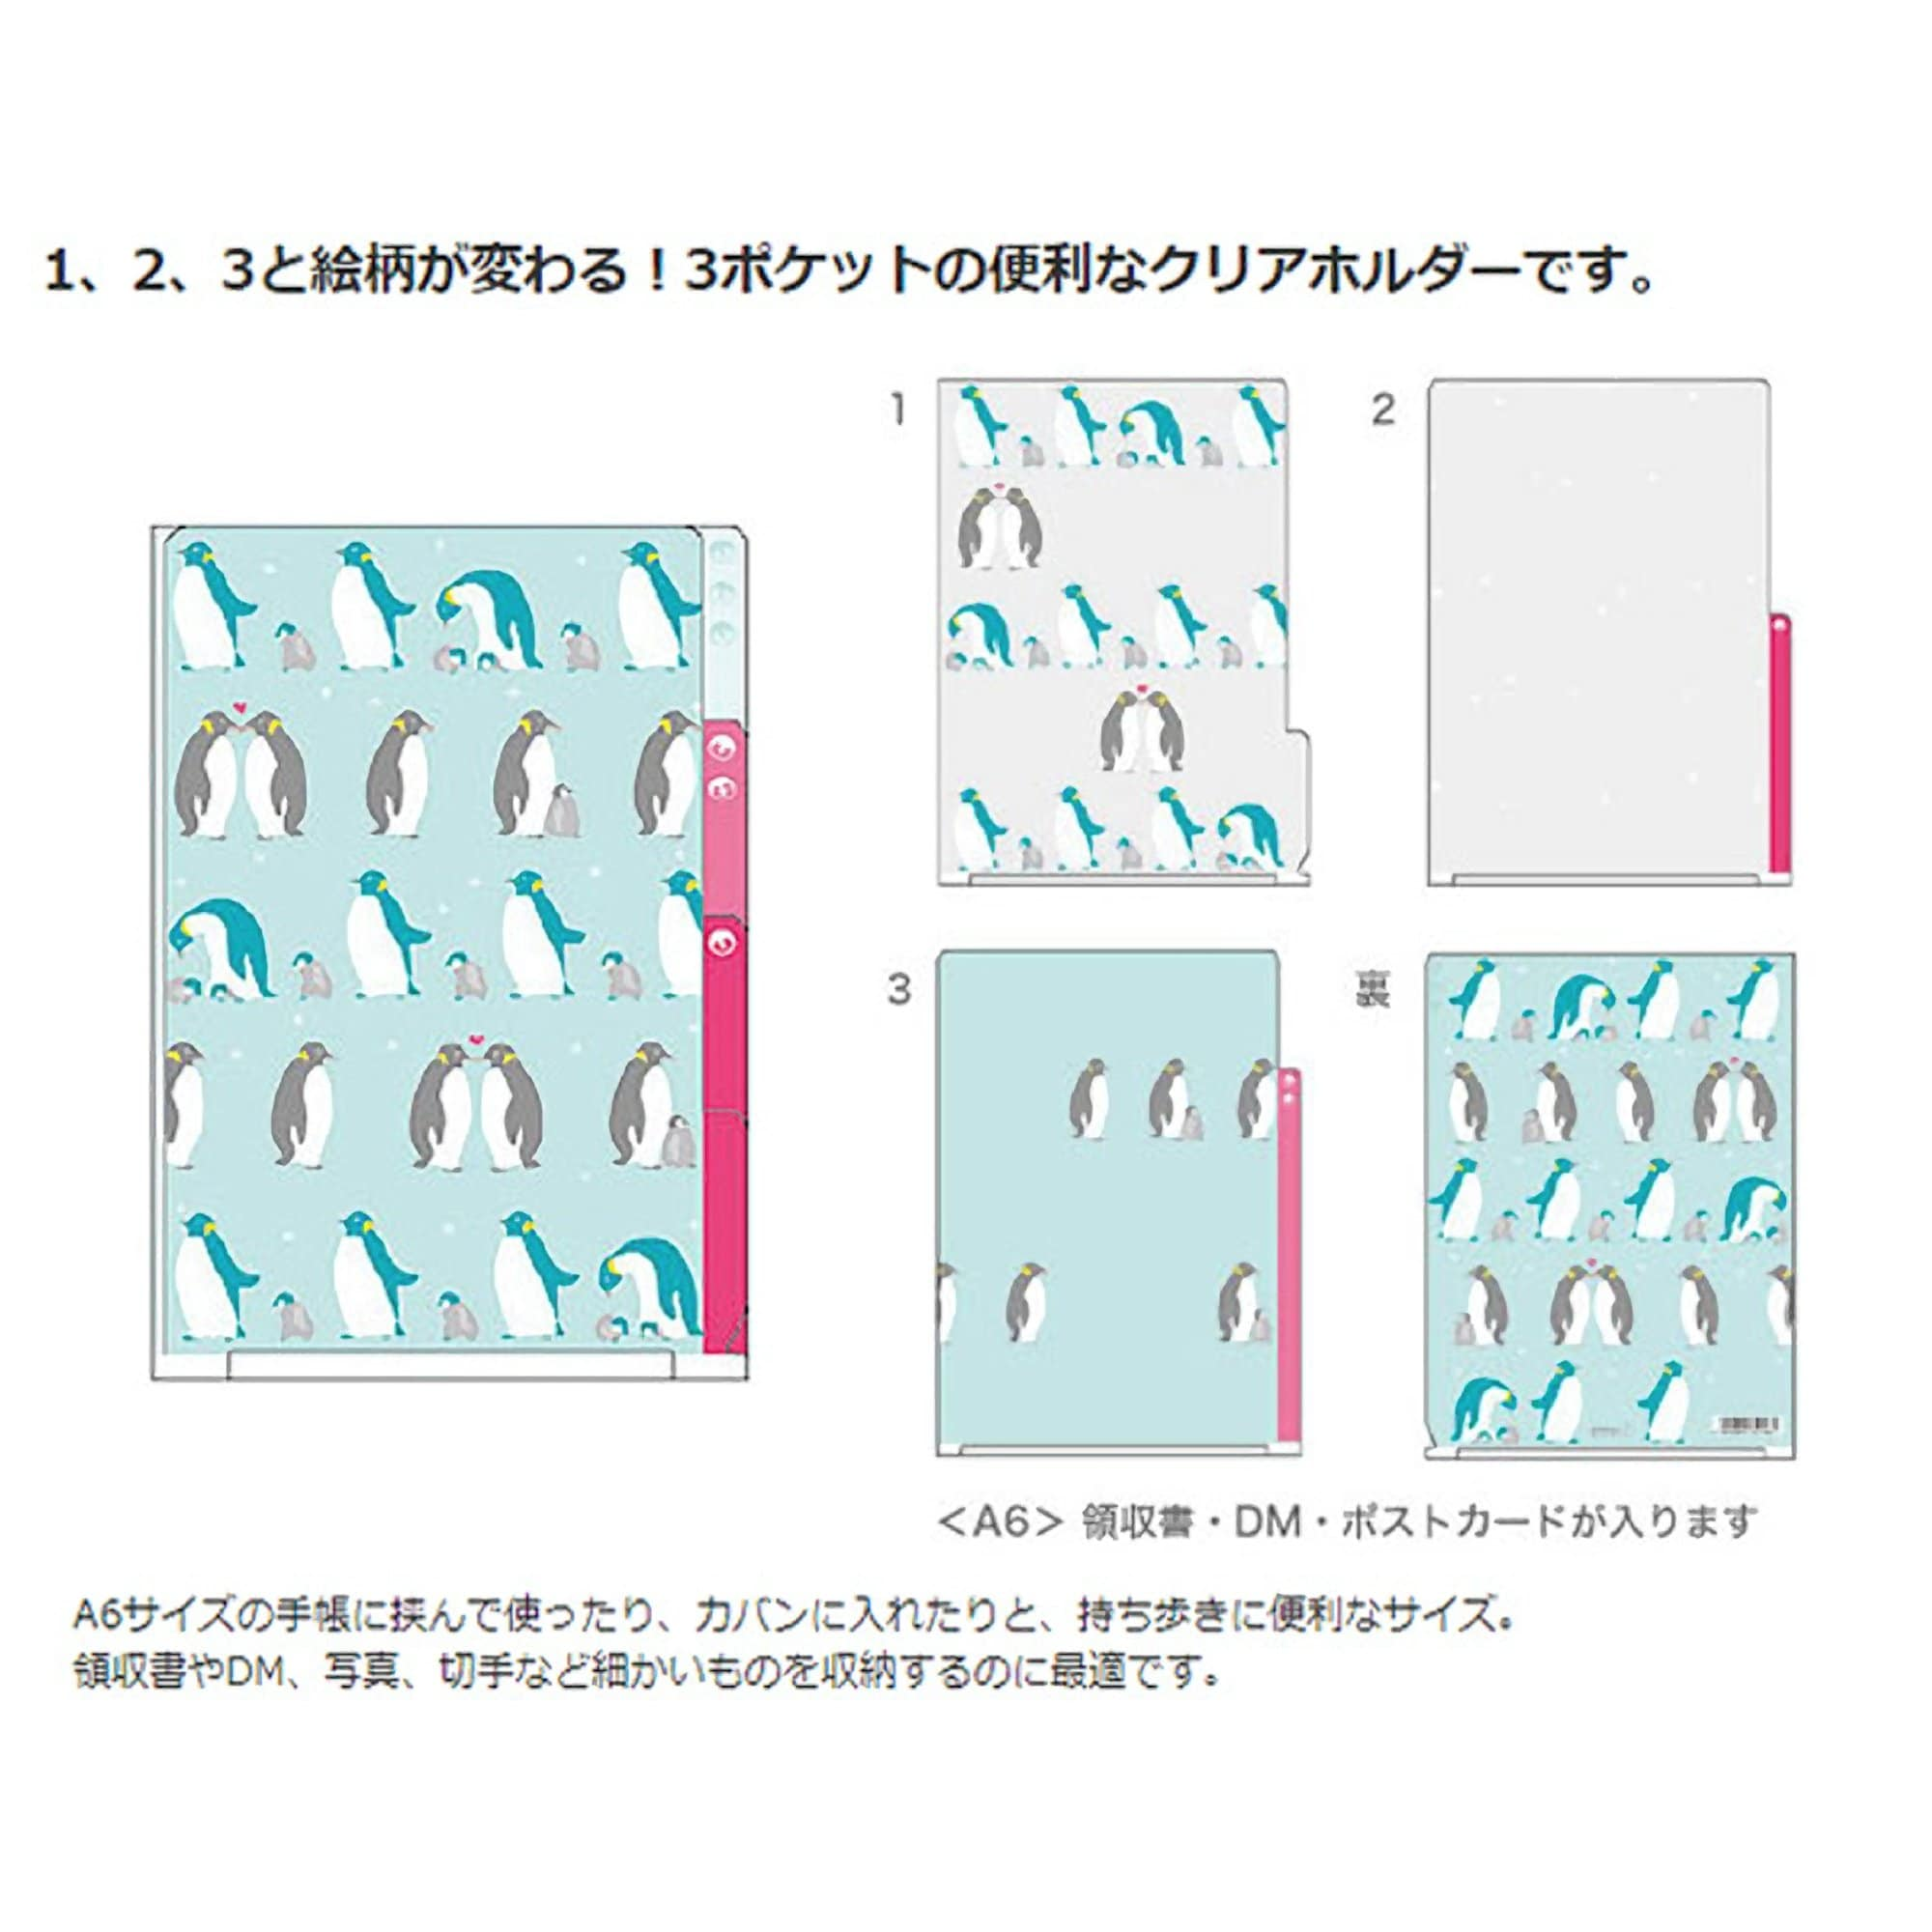 Midori MD A5 3 Pocket Clear Folder | Penguin Kawaii - The Stationery Life!